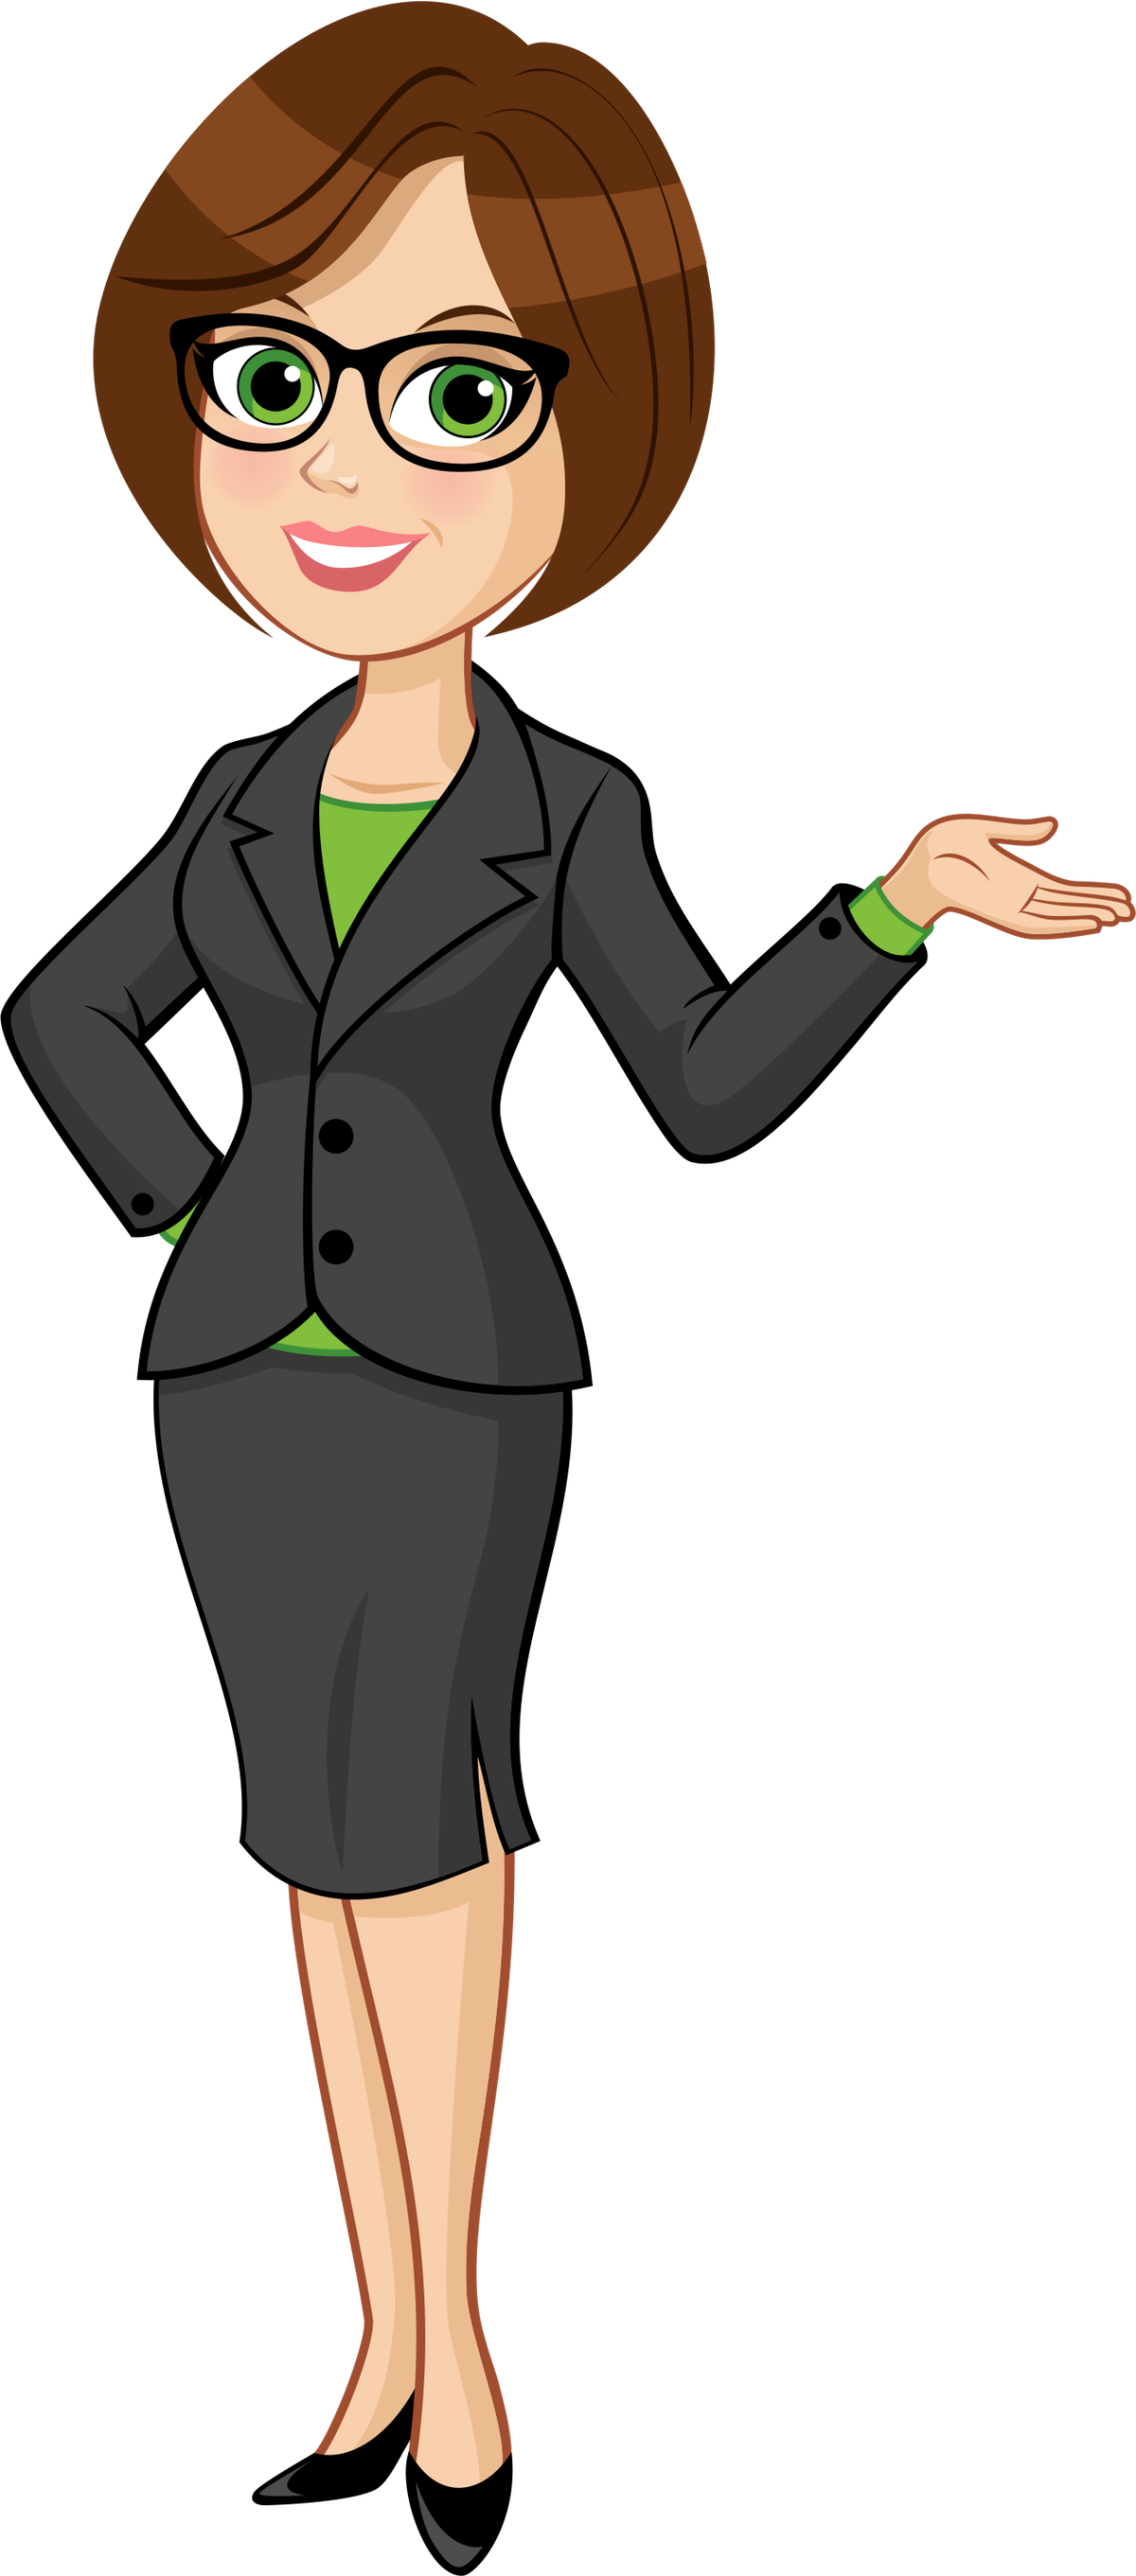 Create a business attired female cartoon character